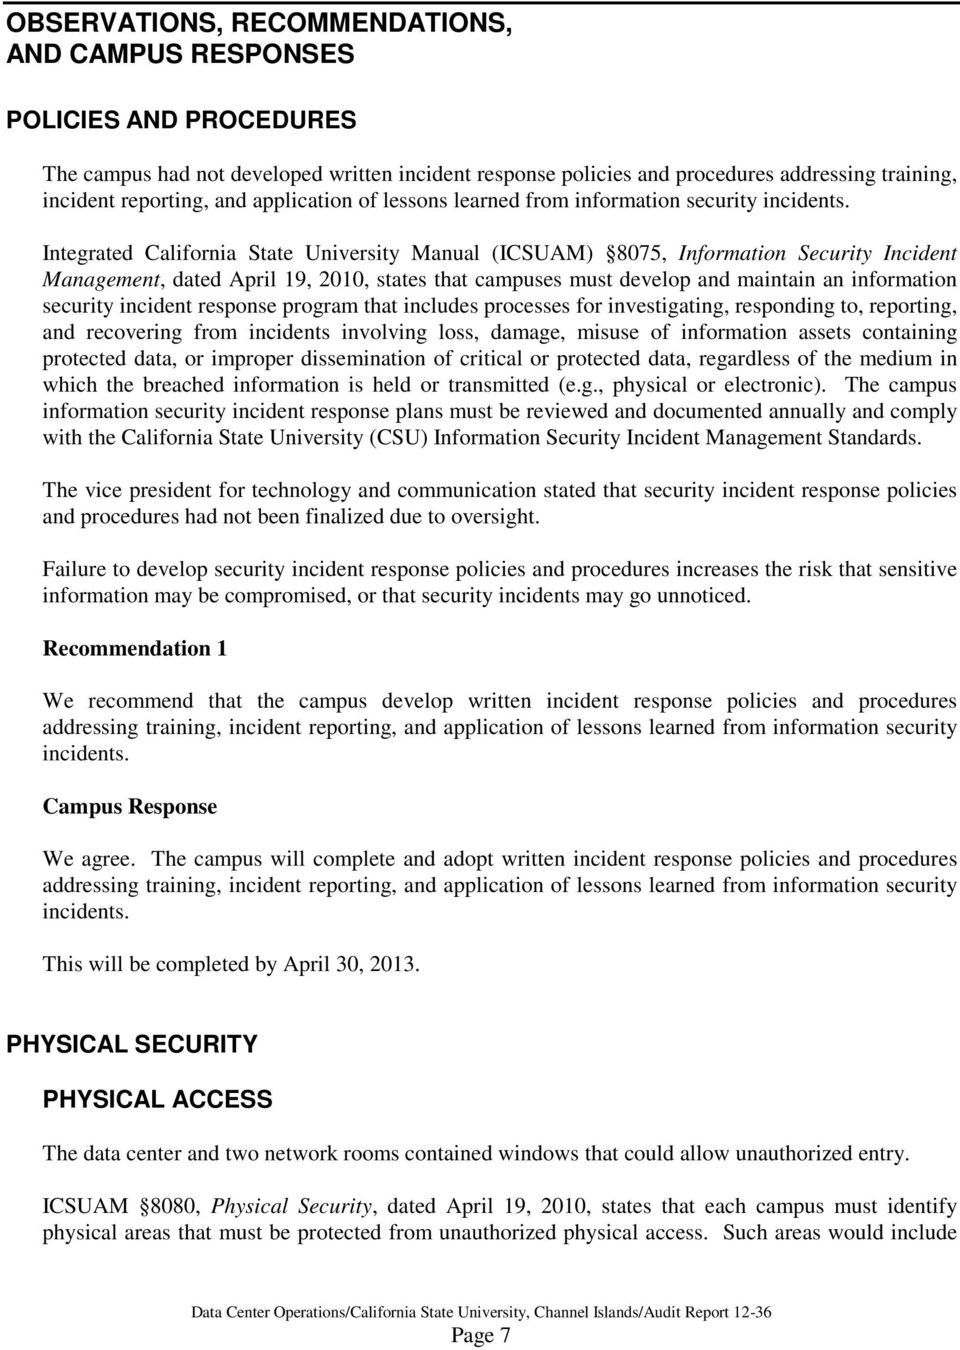 Integrated California State University Manual (ICSUAM) 8075, Information Security Incident Management, dated April 19, 2010, states that campuses must develop and maintain an information security